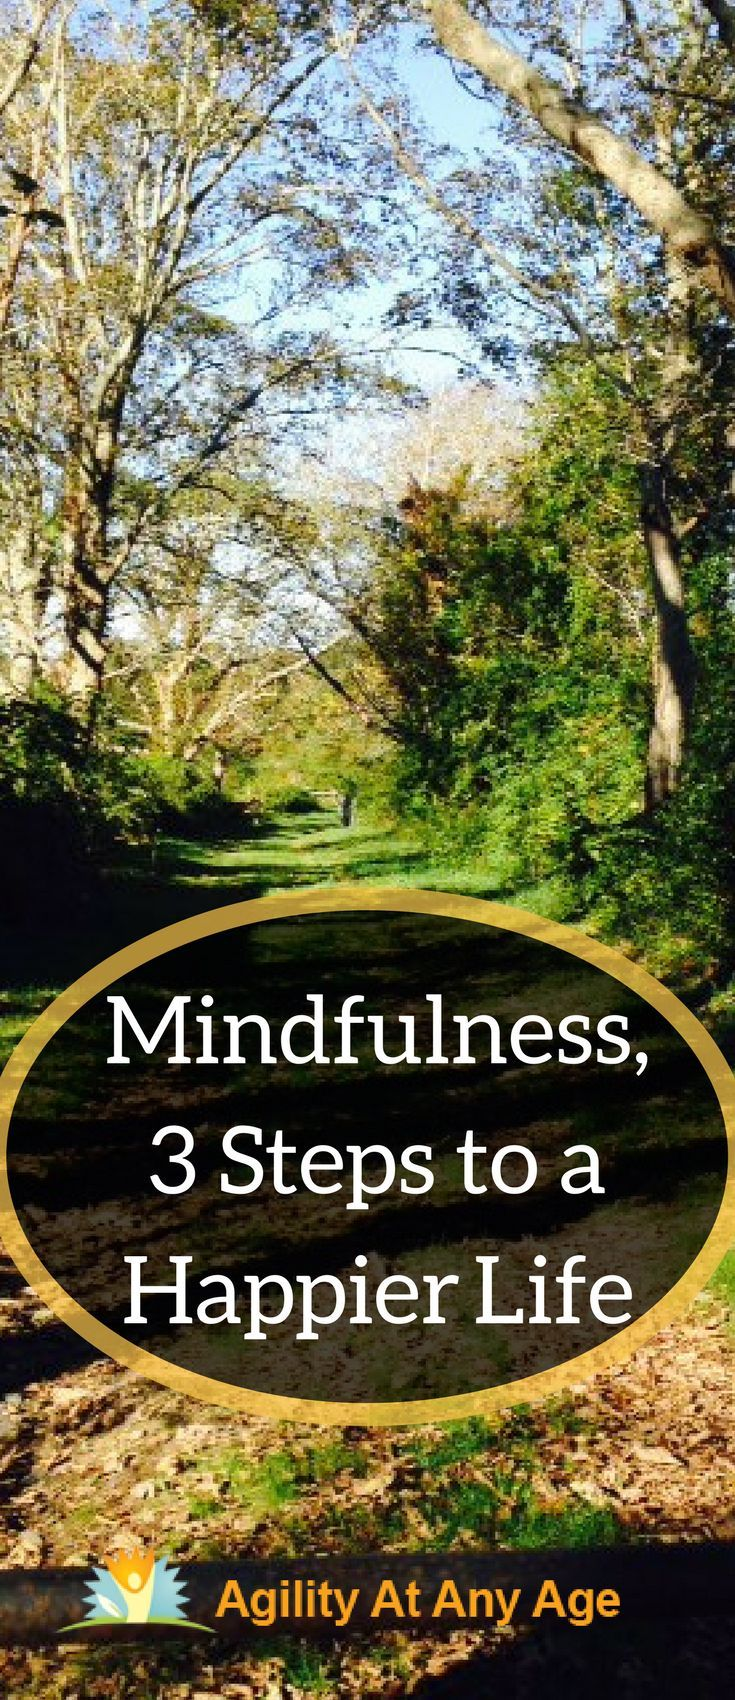 Creating a mindfulness practice is a powerful way to reduce anxiety and depression. It is simple and easy. I am a certified Alexander Technique teacher. I teach people how to live better!